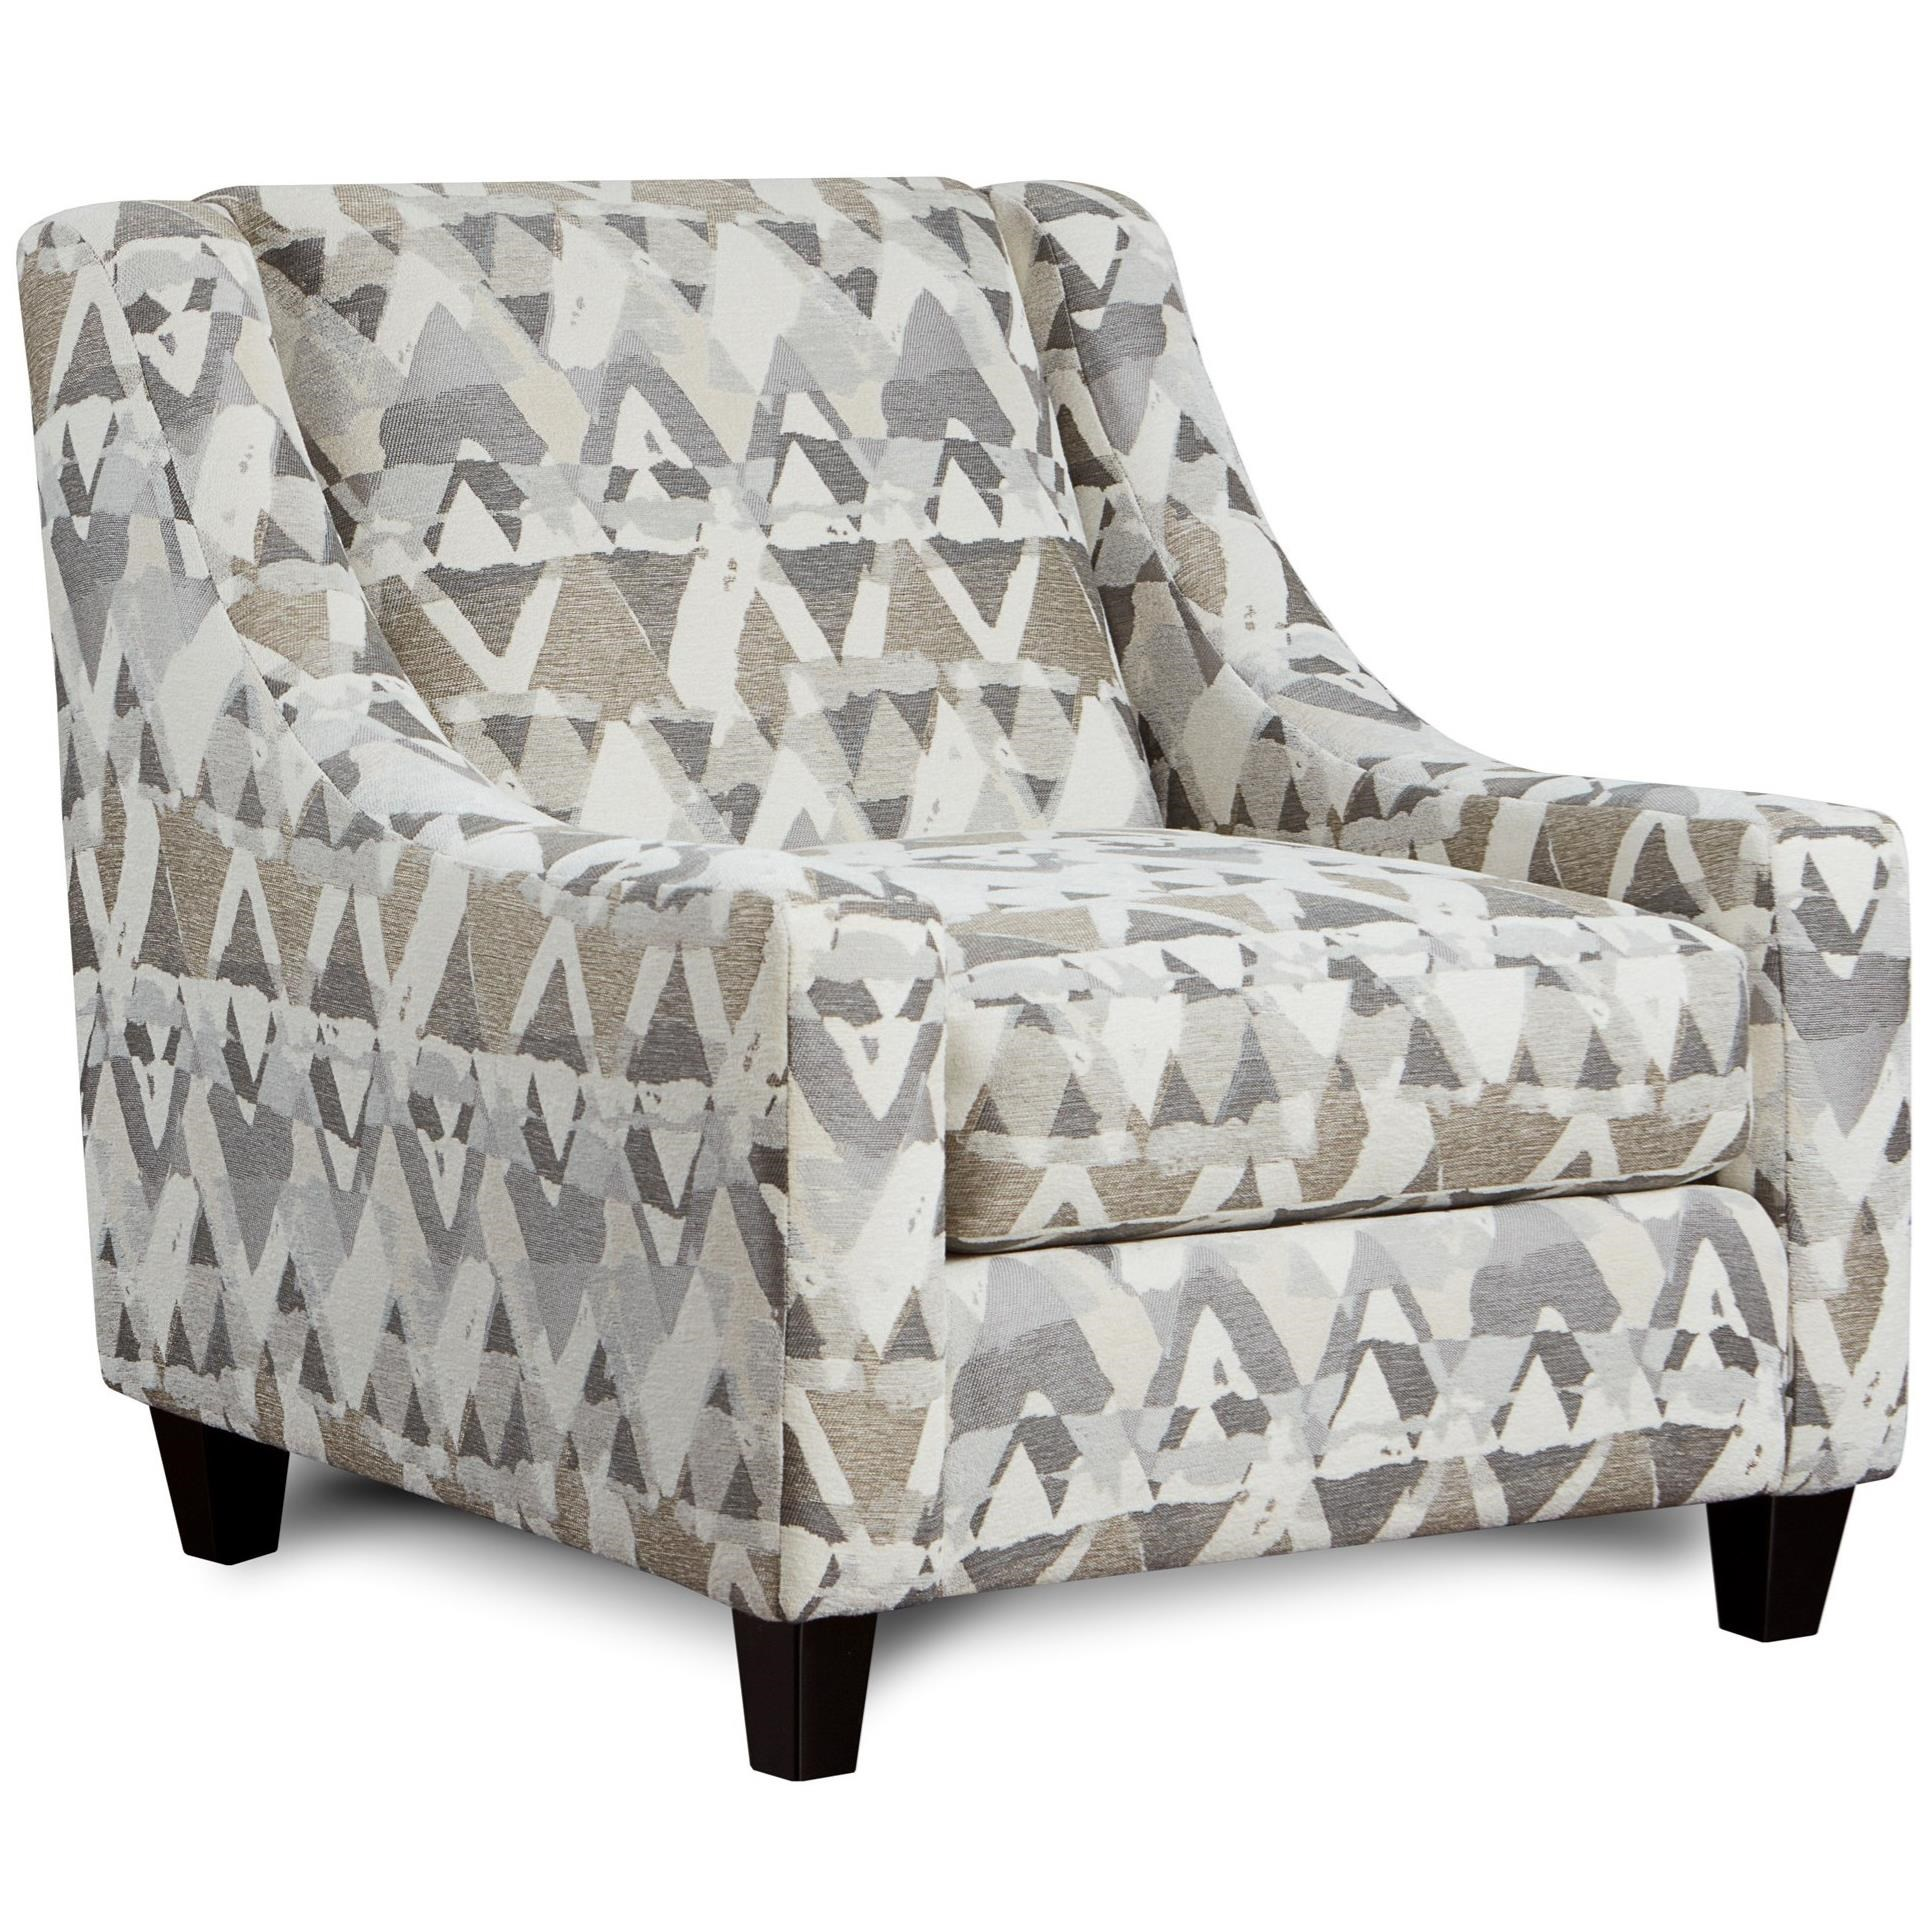 552 Accent Chair by FN at Lindy's Furniture Company